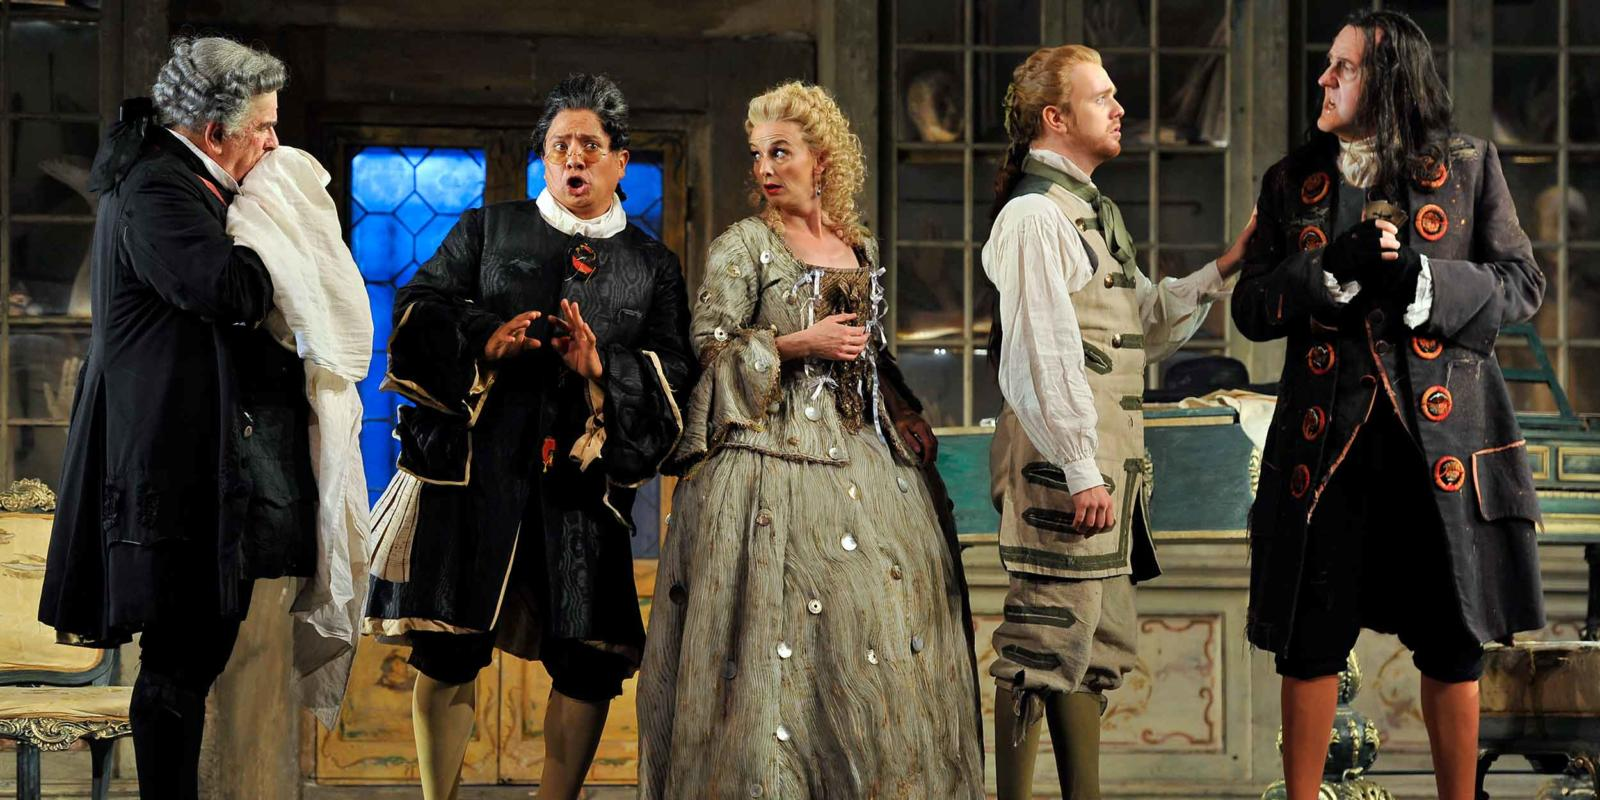 ENO The Barber of Seville: Alan Opie, Eleazar Rodriguez, Sarah Tynan, Morgan Pearse and Alastair Miles (c) Robbie Jack